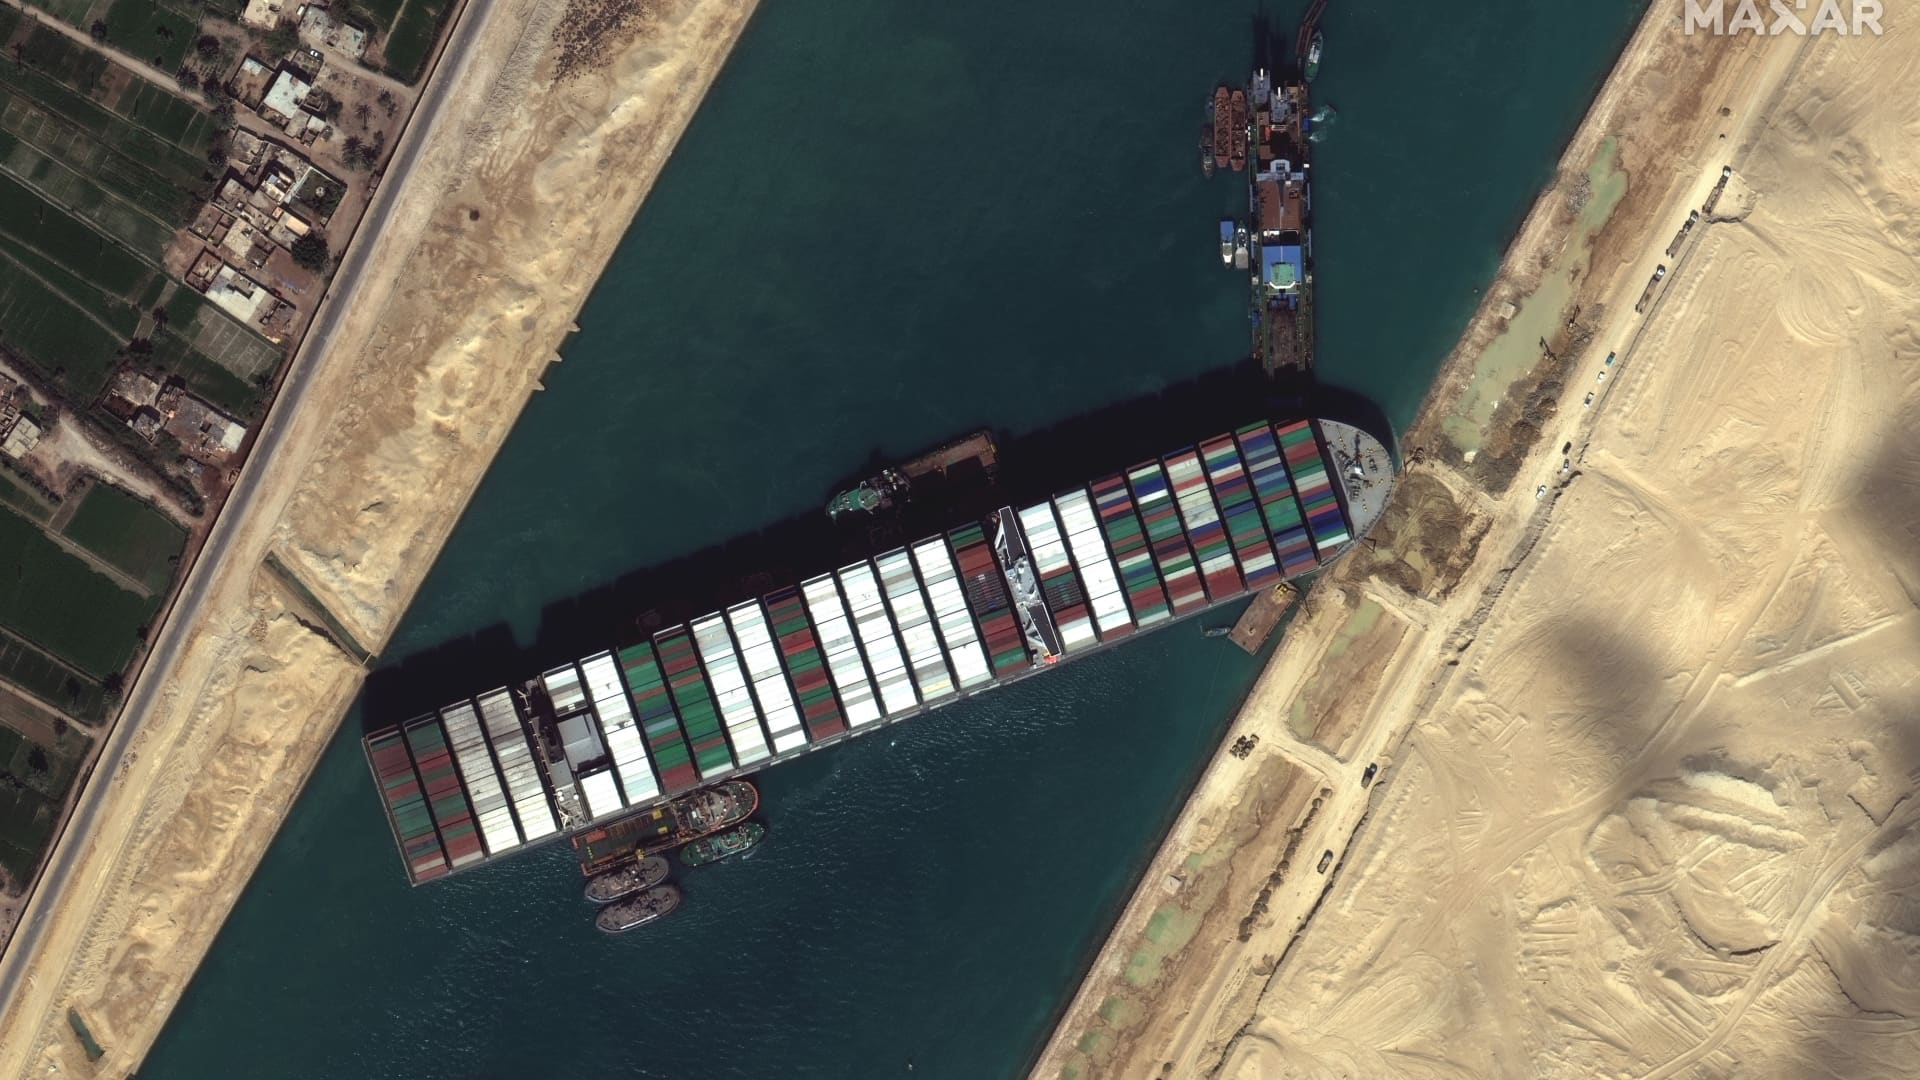 Imagery of the Ever Given in the Suez Canal captured by the company's WorldView-3 satellite on Saturday, March 27, 2021.